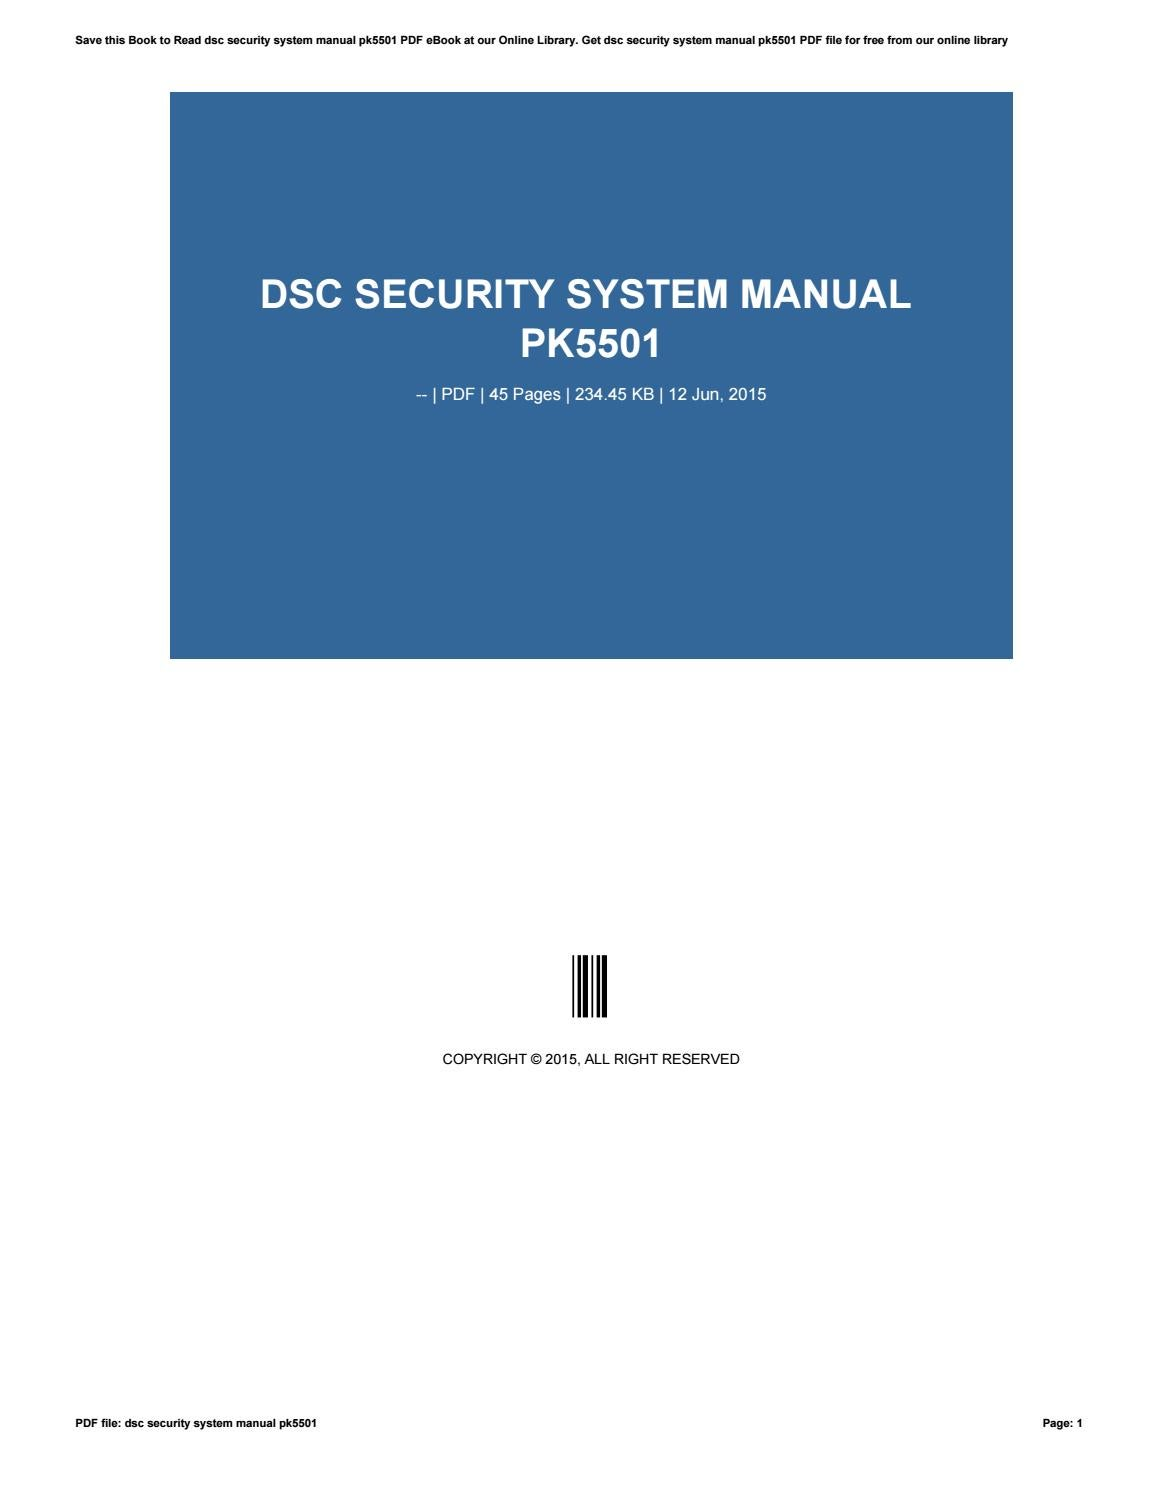 Dsc Security System Manual Pk5501 By 4tb4 Issuu